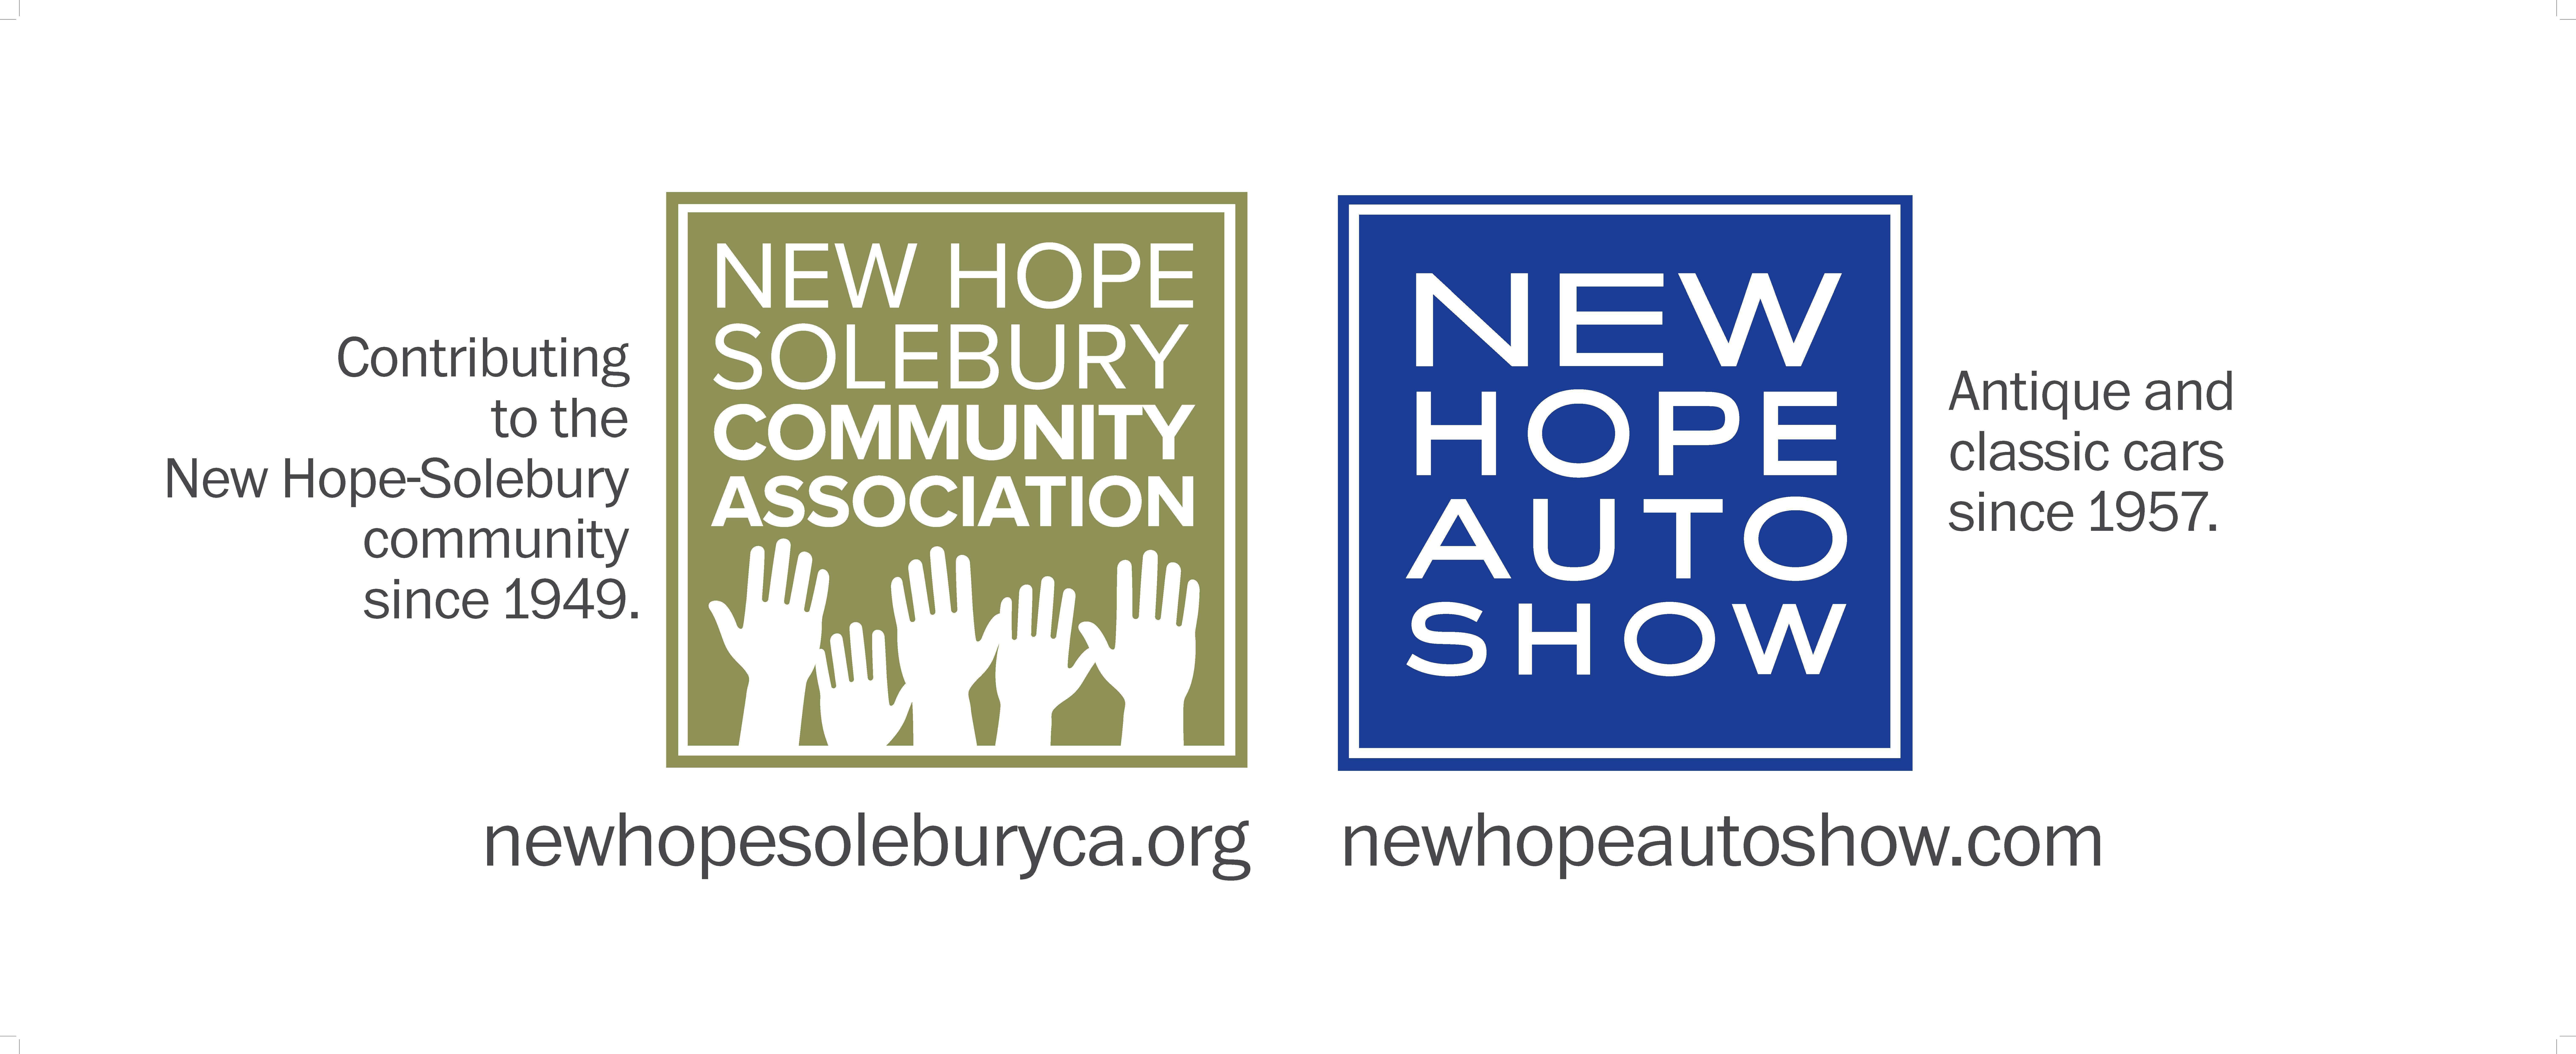 NEW HOPE-SOLEBURY COMMUNITY ASSOCIATION